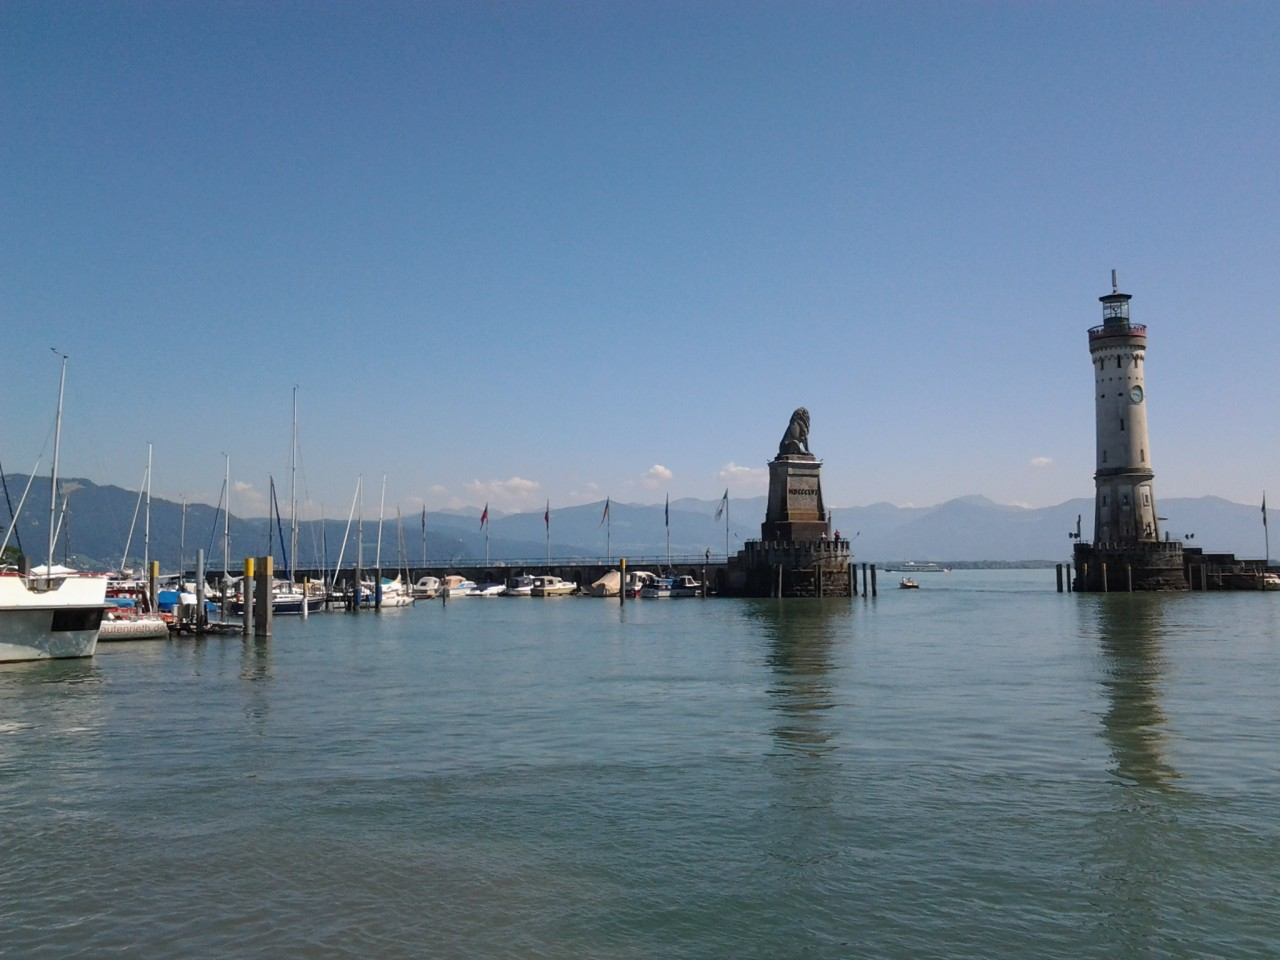 Port of Lindau